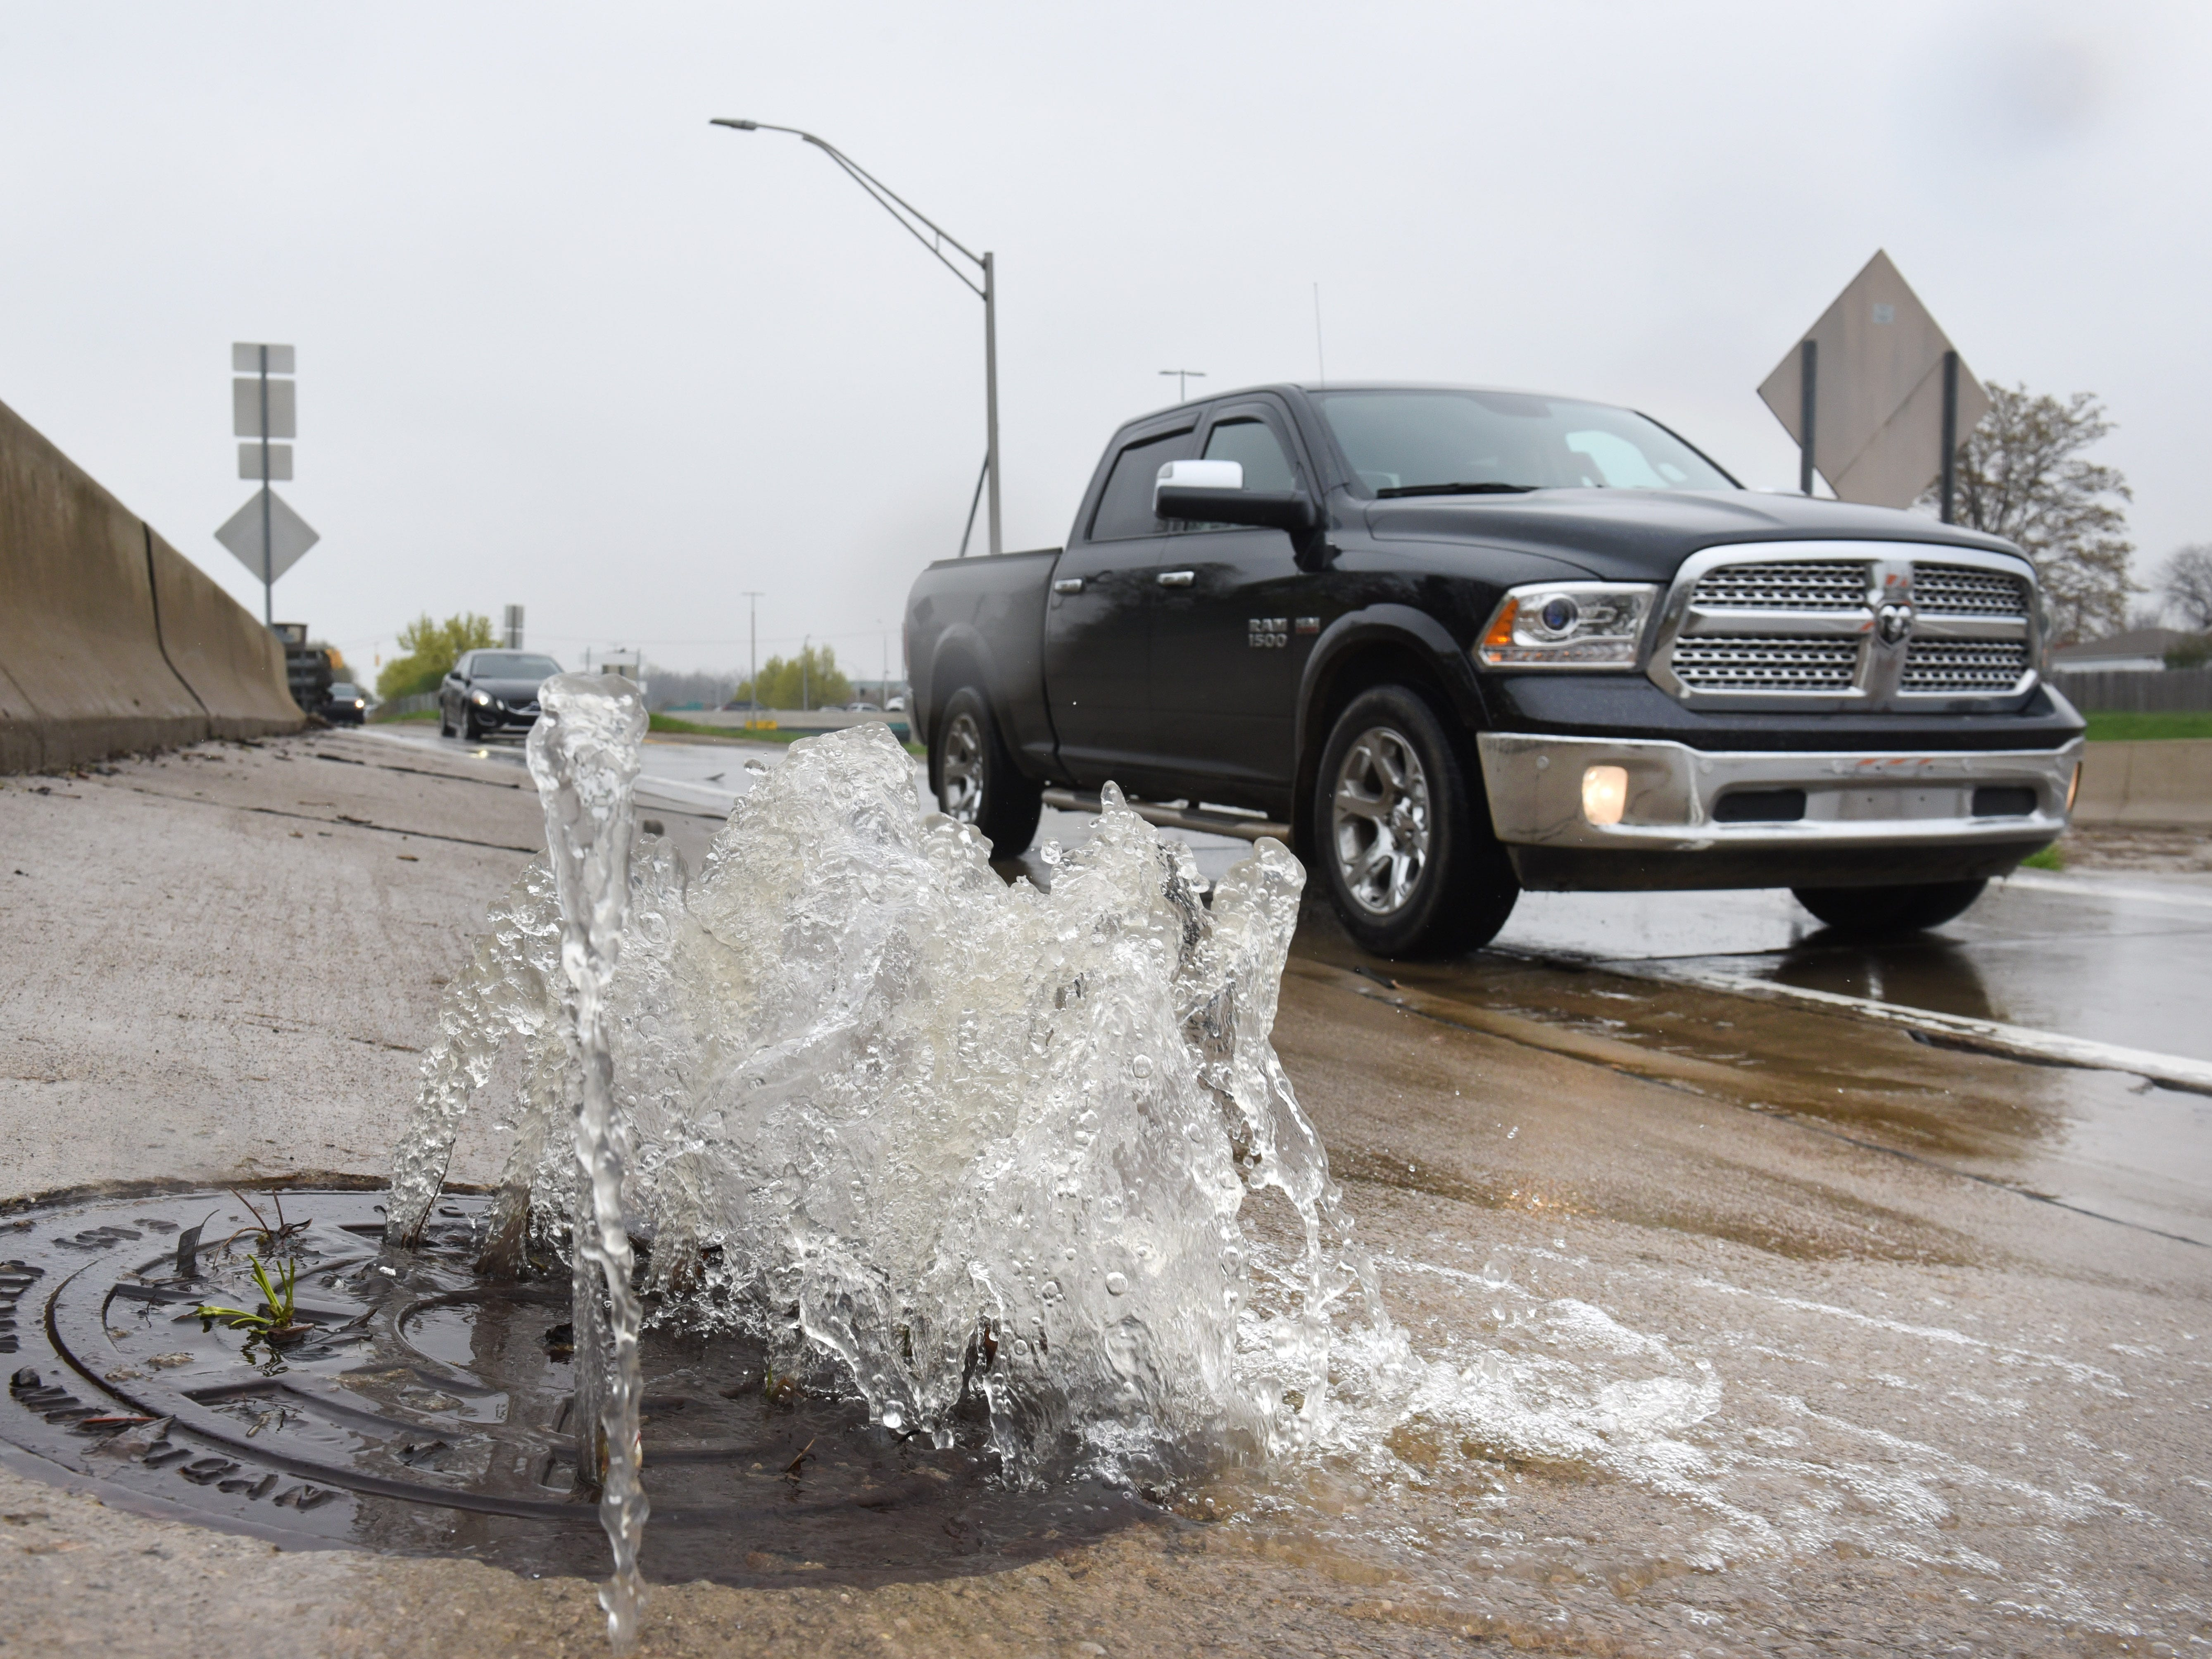 Water shoots out of a manhole cover along the Southfield Road service drive as motorists are detoured off Southfield Road at Outer Drive to avoid floodwaters.